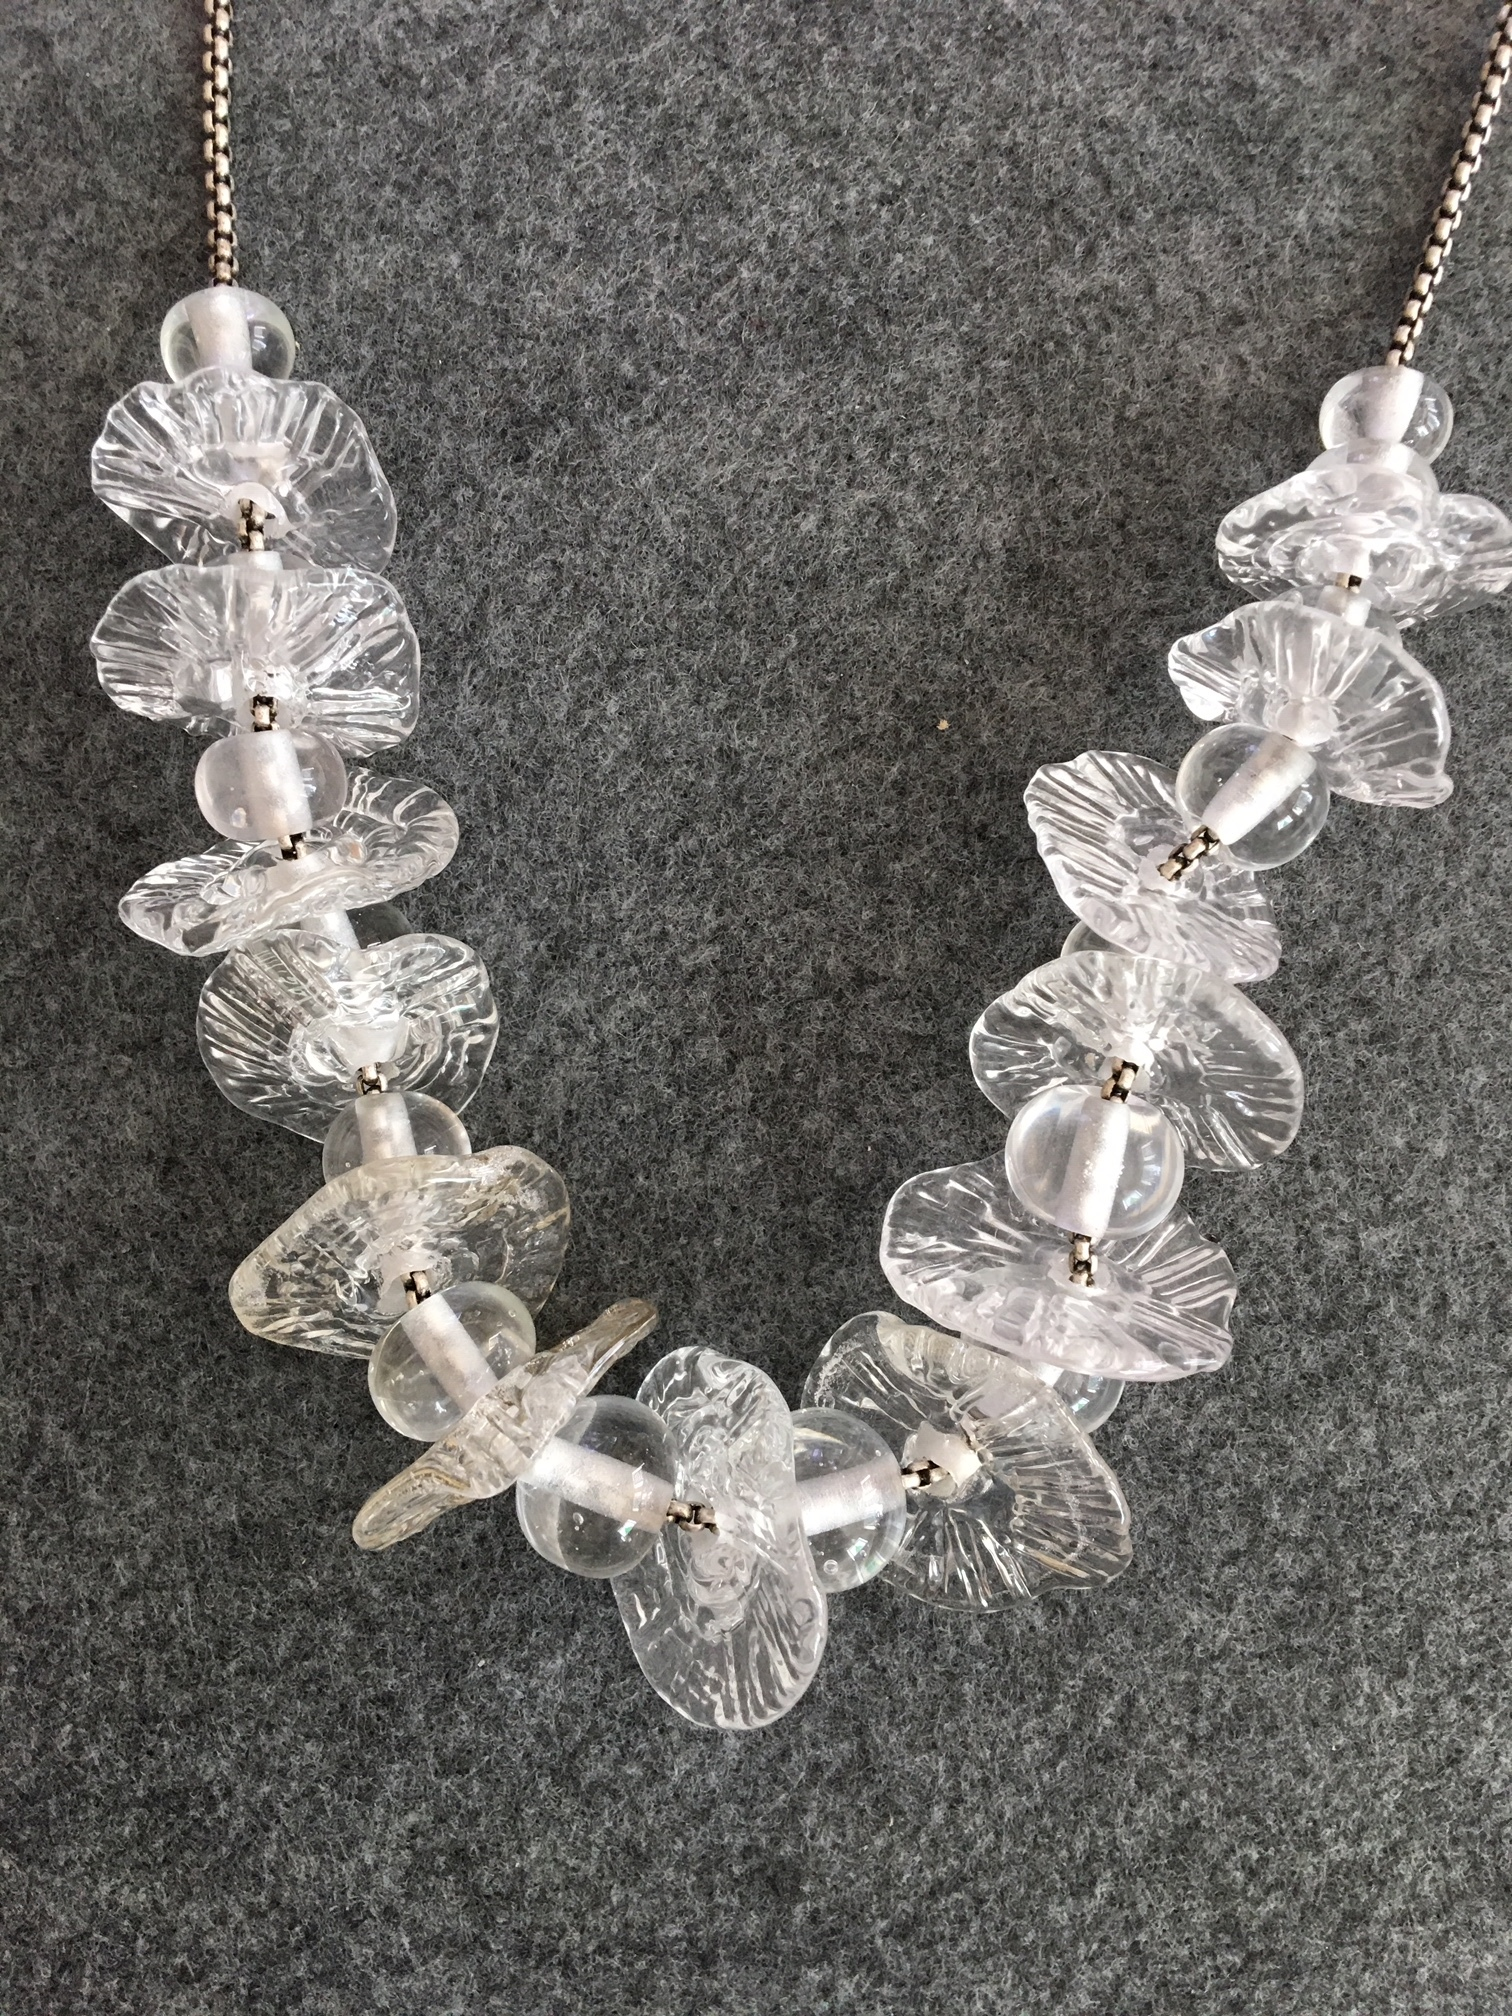 "Handmade Glass Necklace, Crystal Ruffles, 22"", Silver Plate Chain, Sterling Clasp"